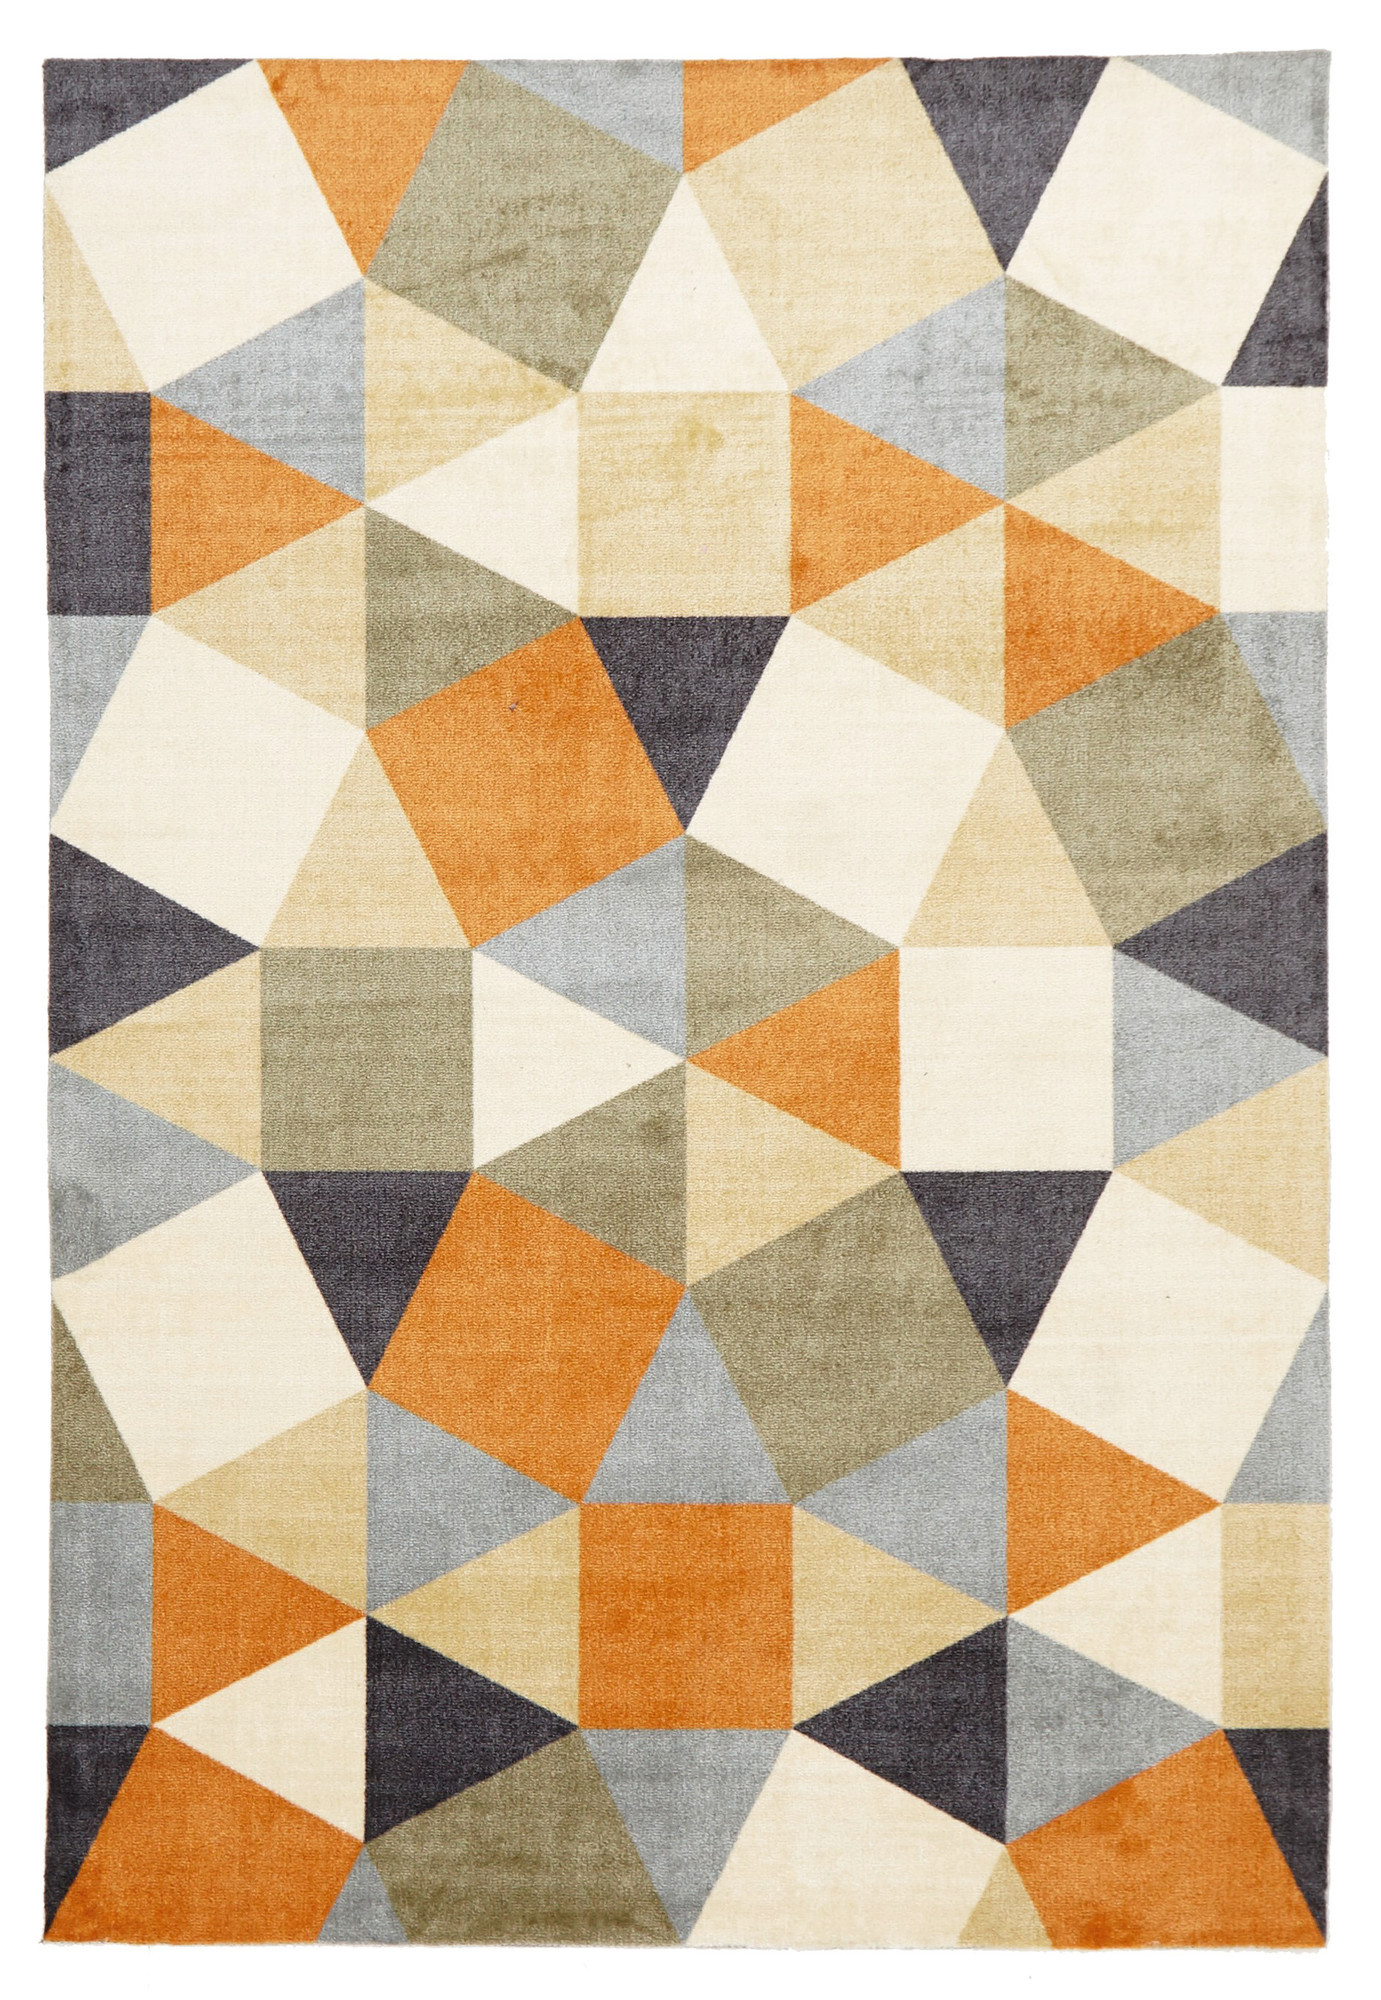 sku #netw4498 pixel modern rug is also sometimes listed under the following SHCAQXR